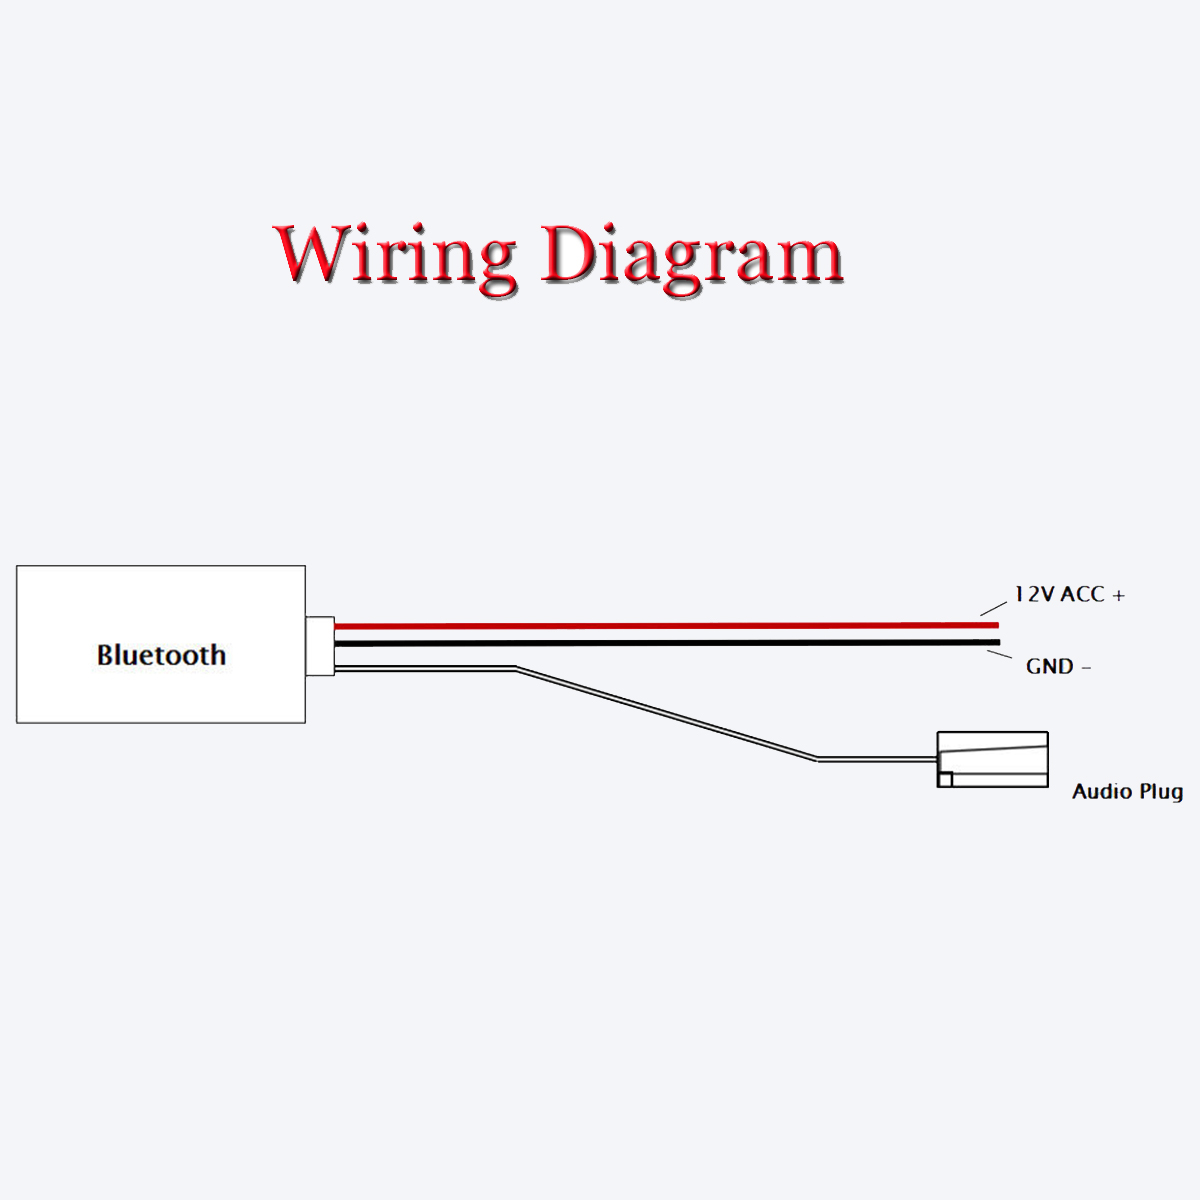 hight resolution of aux wire wiring diagram wire management wiring diagram aux cord wiring diagram aux cord wire